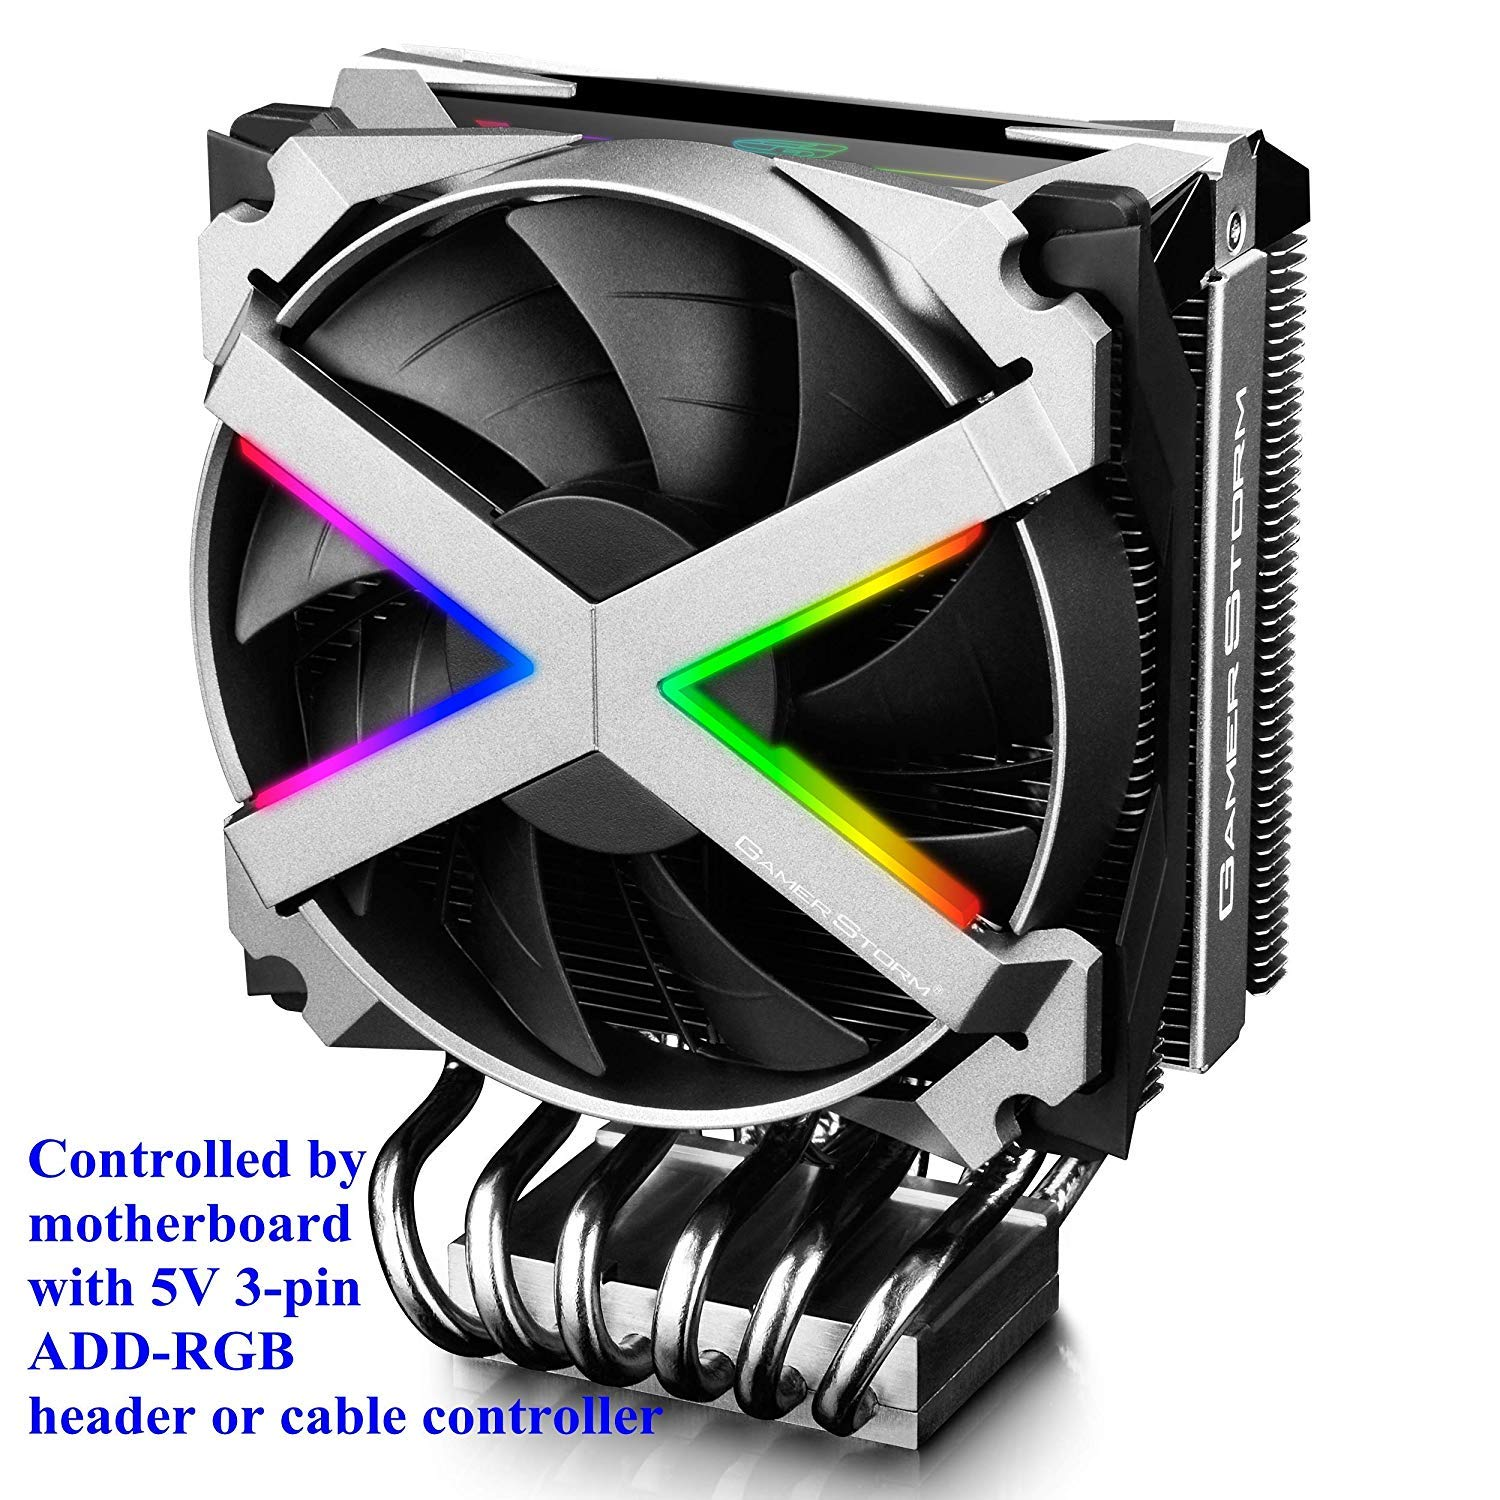 DEEPCOOL FRYZEN Air CPU Cooler for AMD TR4/AM4, Addressable RGB for Top Cover and Fan Frame with Motherboard SYNC Control, 6 Heatpipes, Premium All-Aluminum Fan Frame with Inverse Double-bladed Fan by DEEP COOL